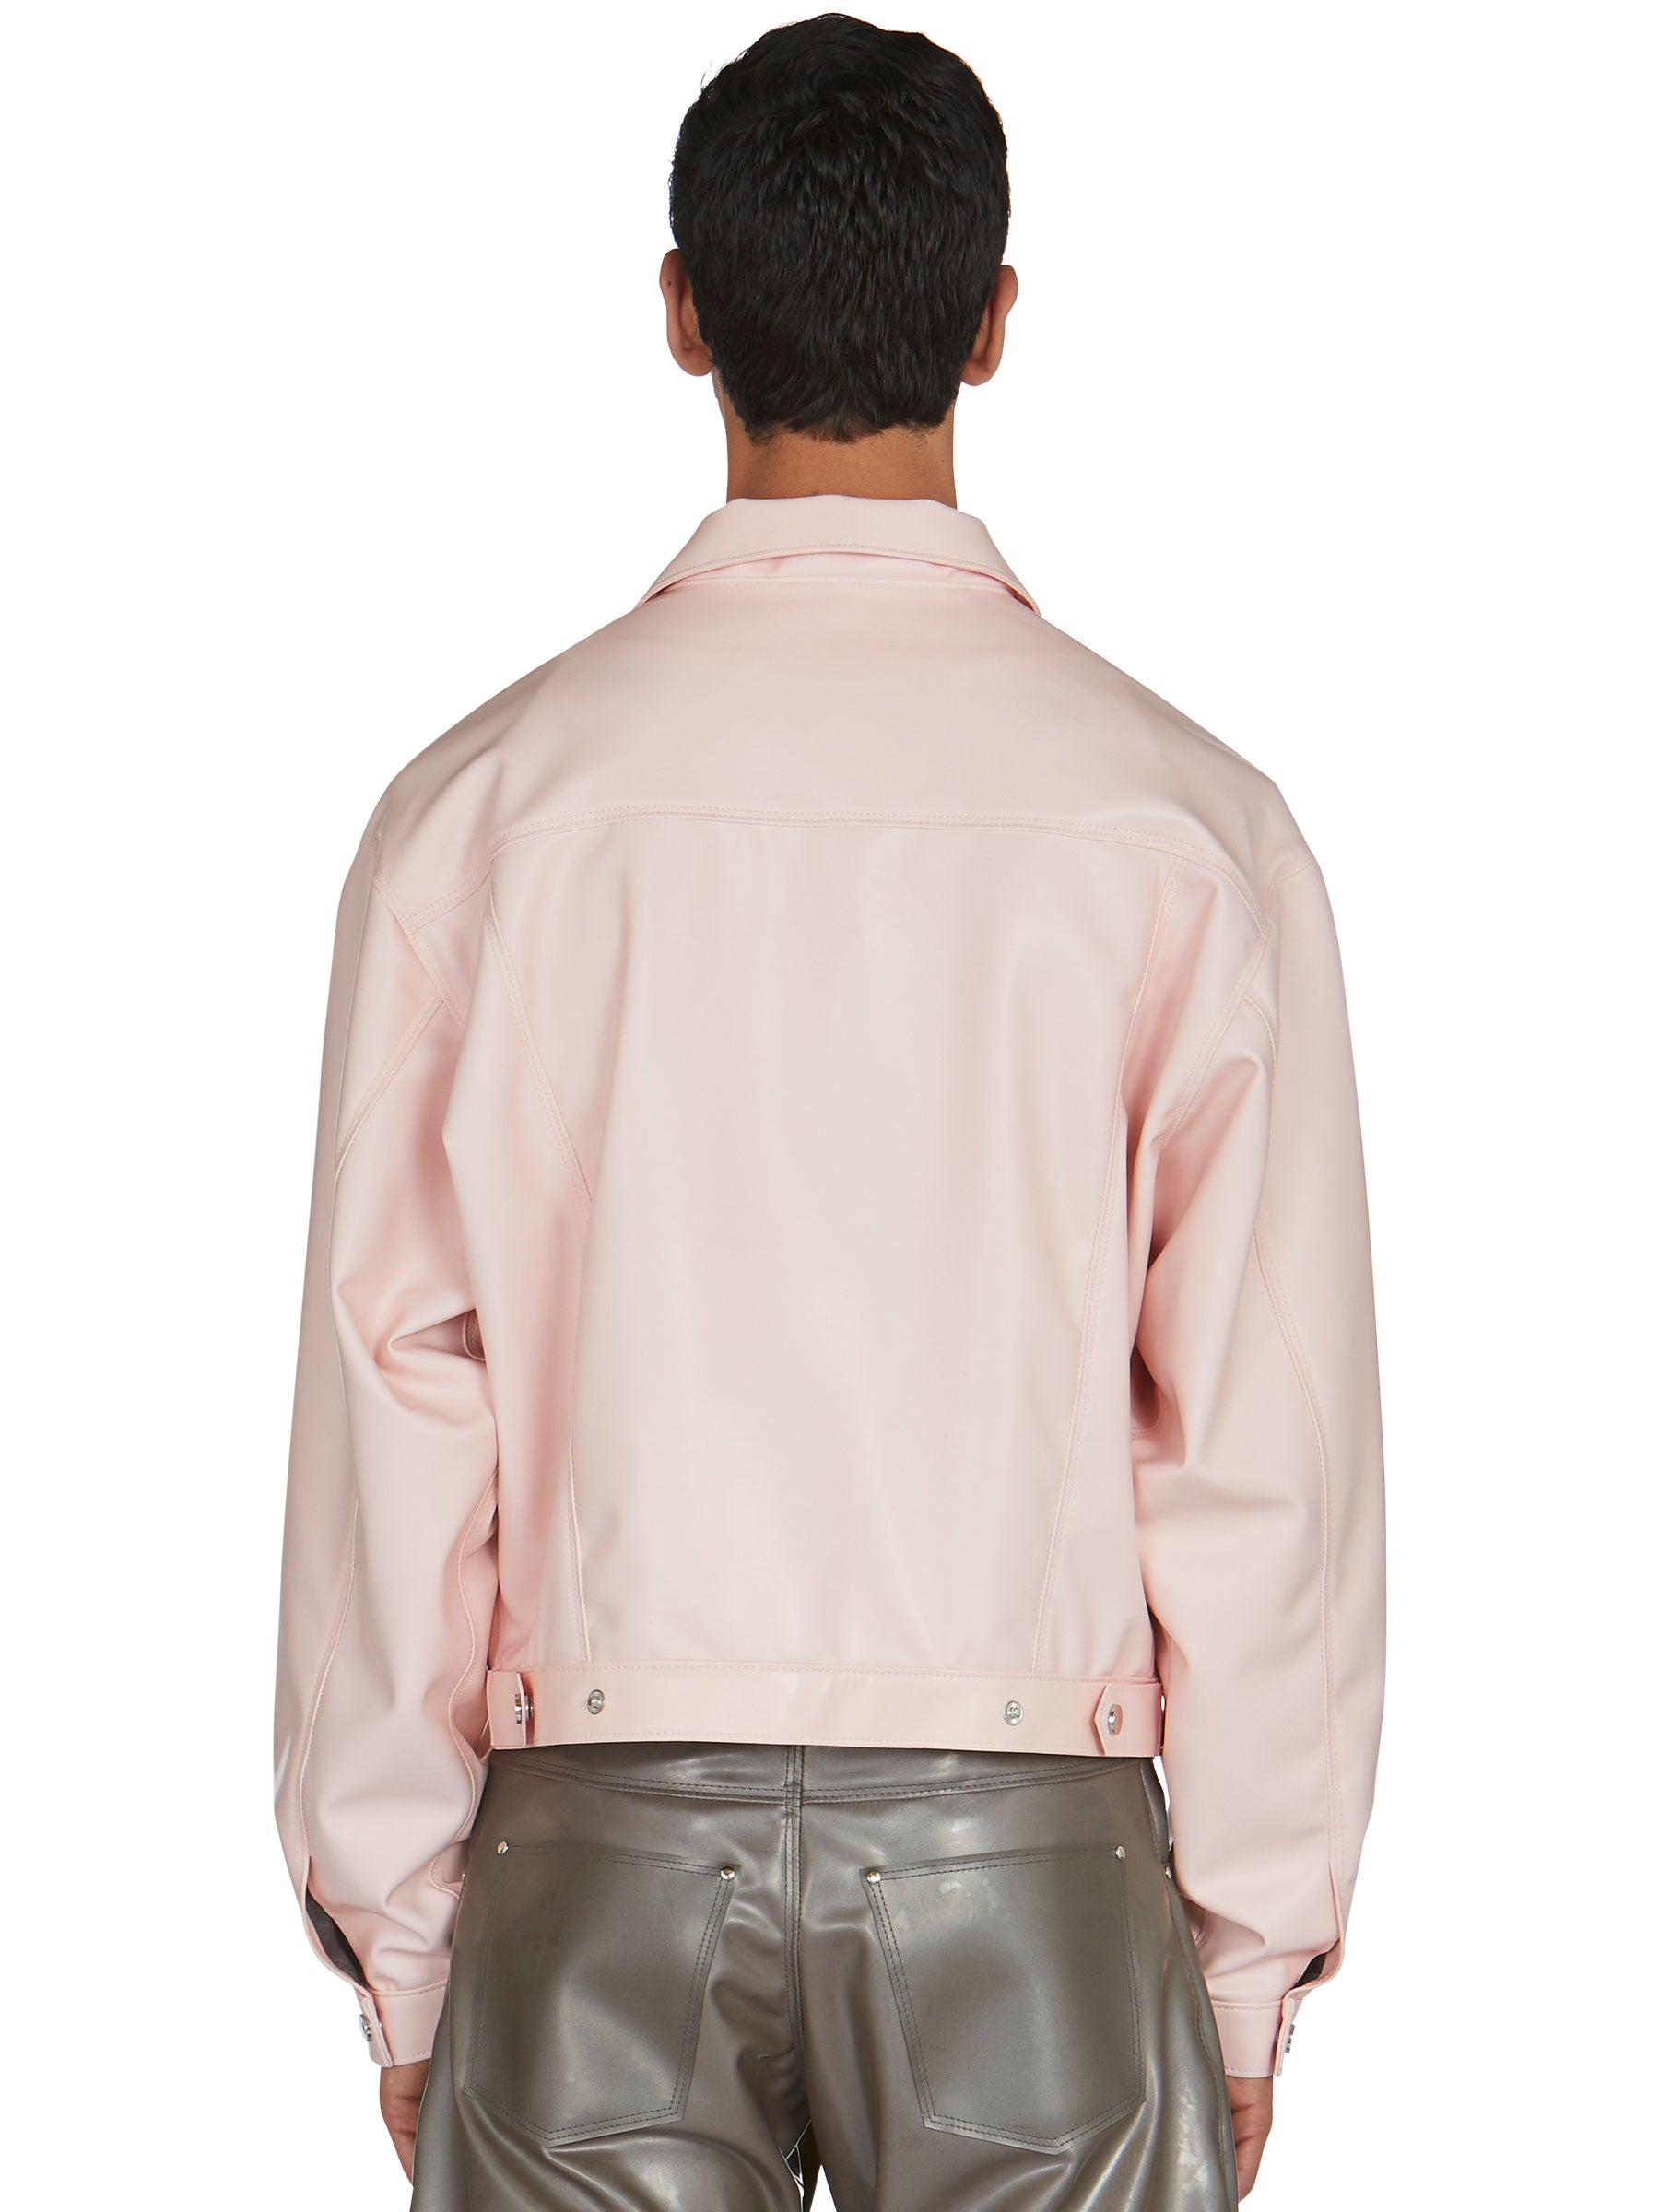 odd92 Shop Arthur Avellano Spring/Summer 2019 Menswear Pink Latex Jean Jacket - 6